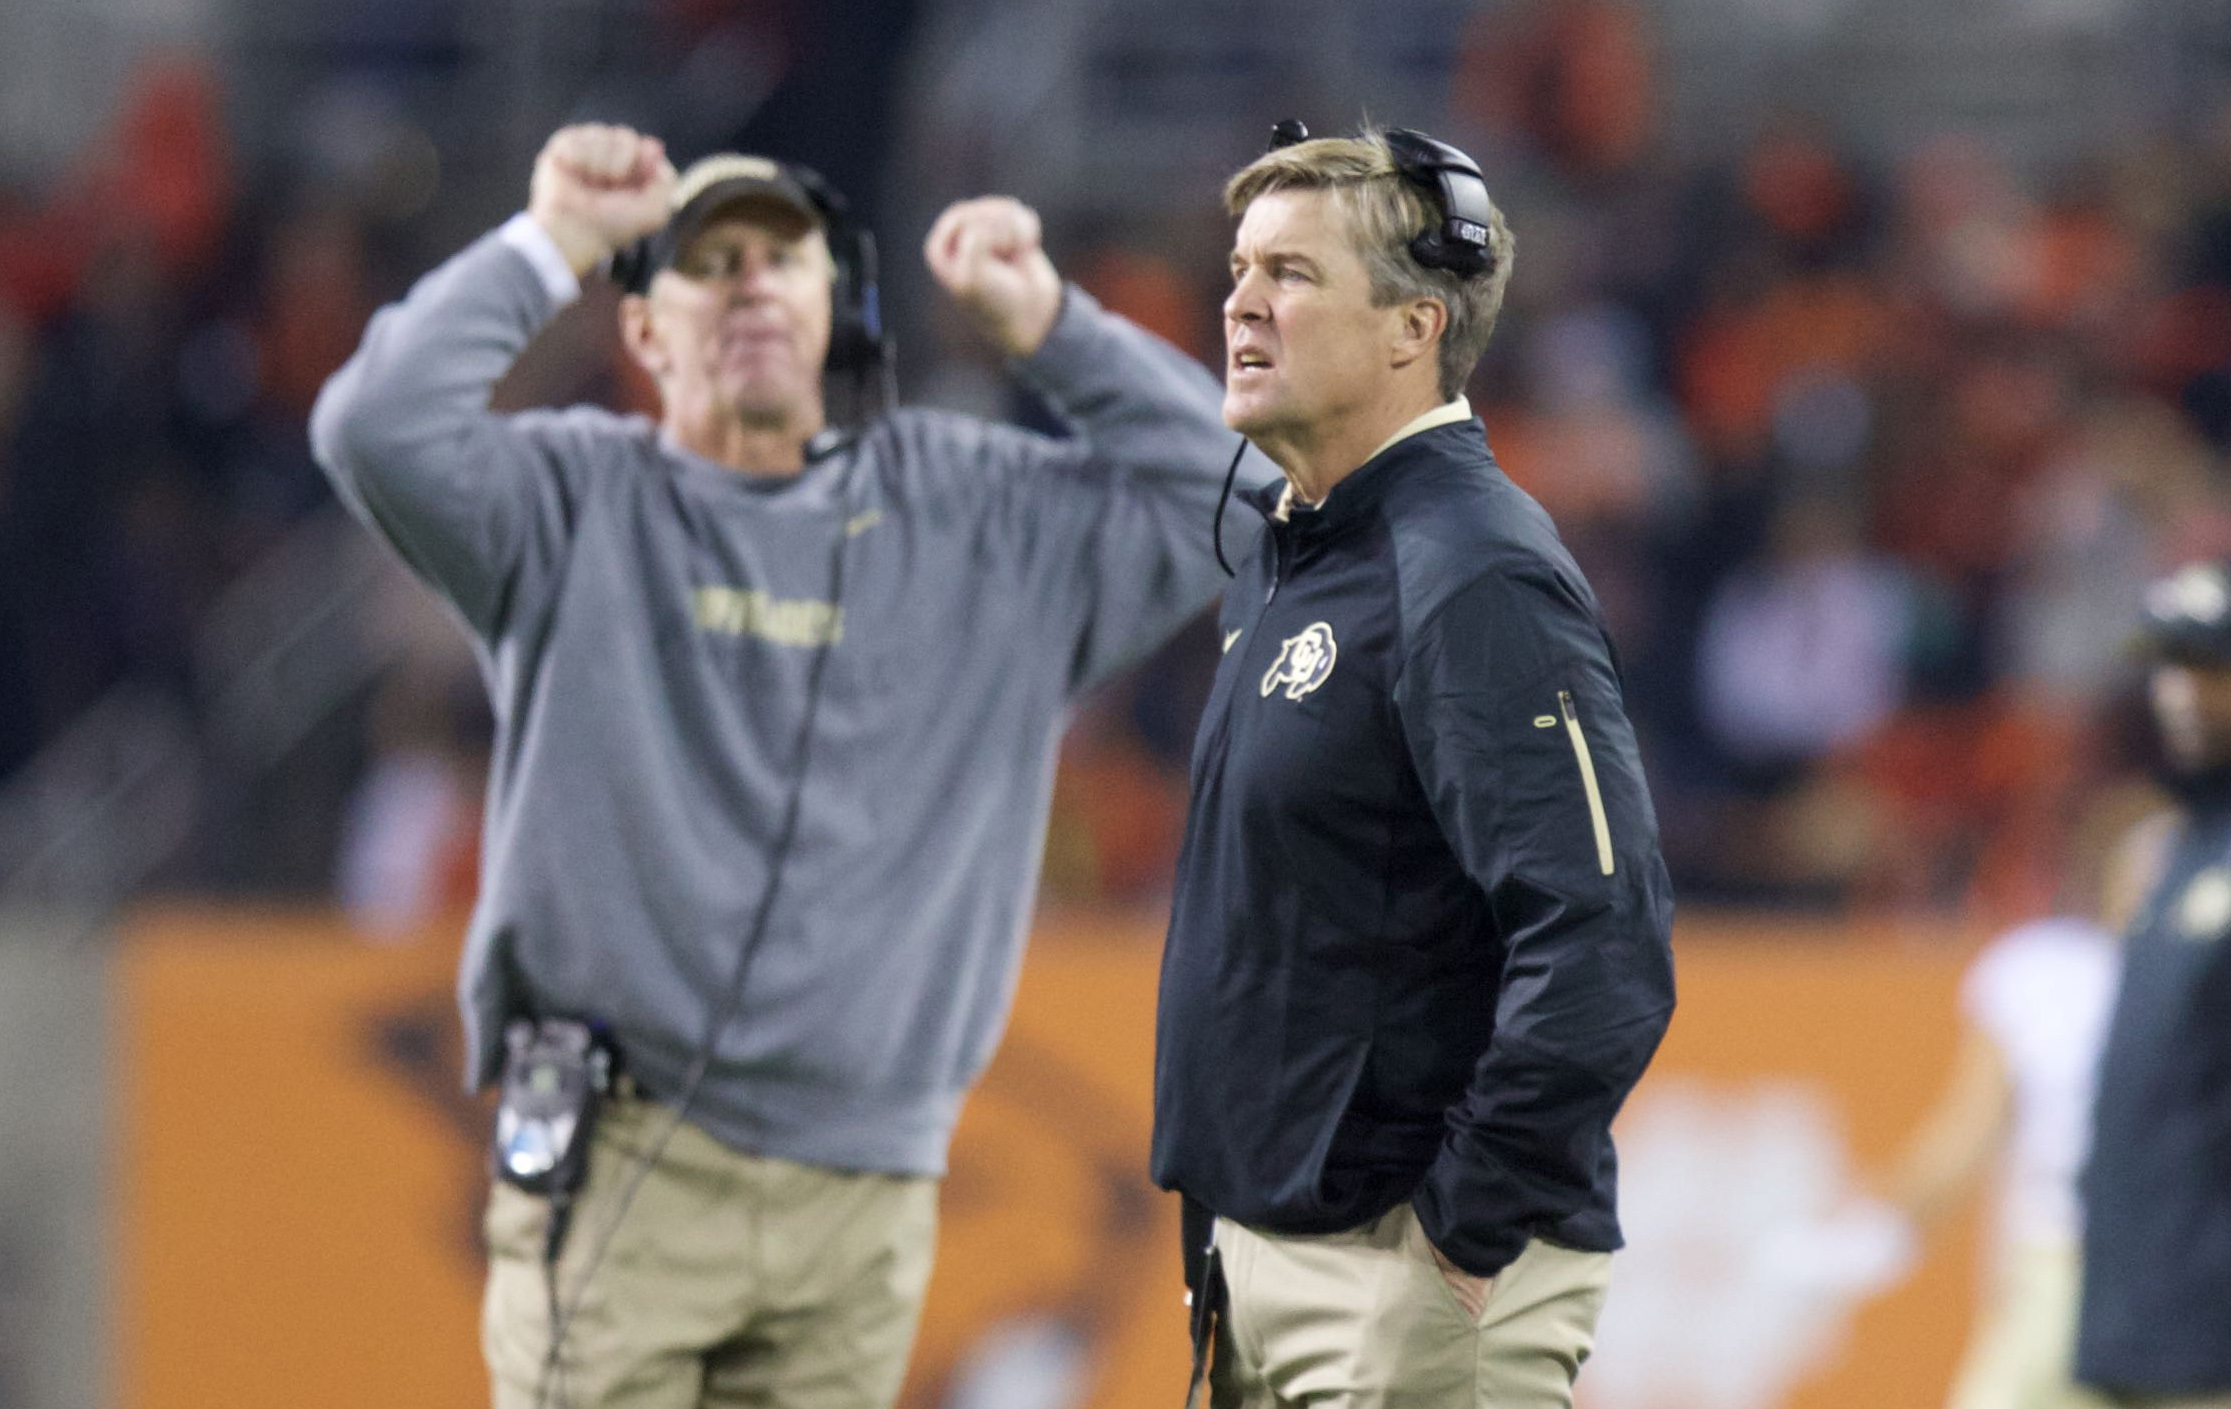 Look at him. Look how stressed he is. Let's have some fun, coach.